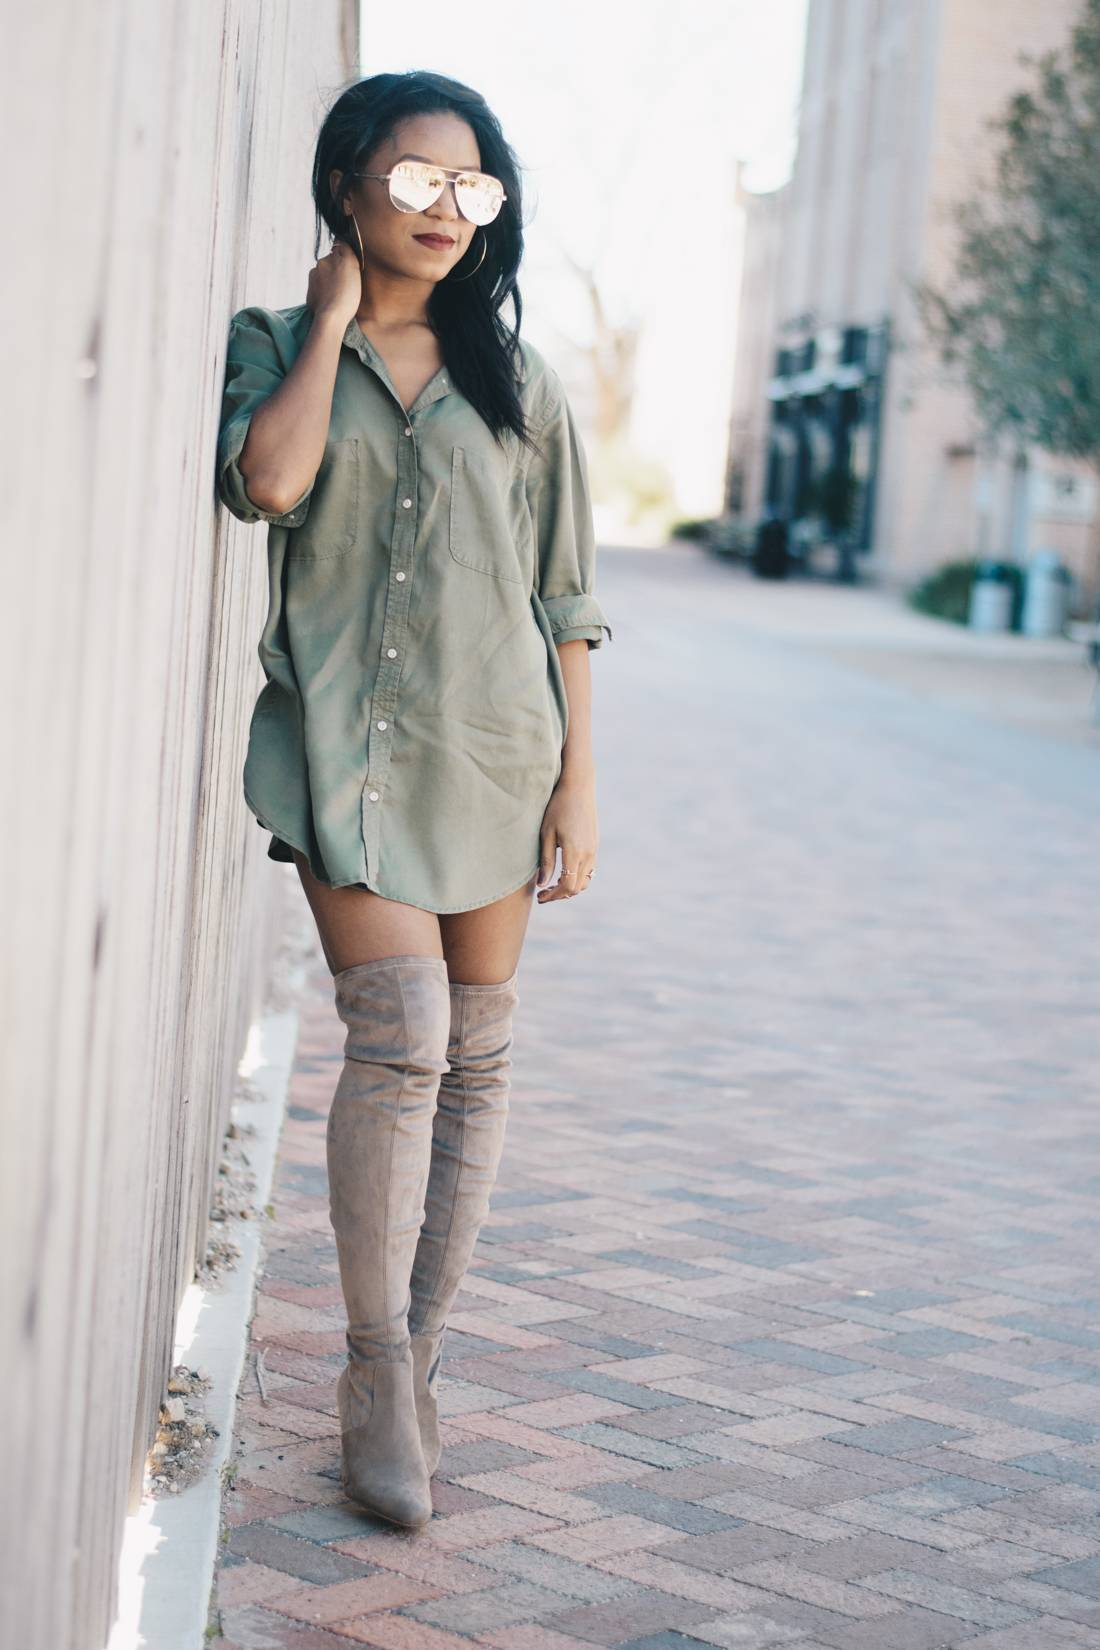 Nude Thigh High Boots And Oversized Shirt 6 Venti Fashion